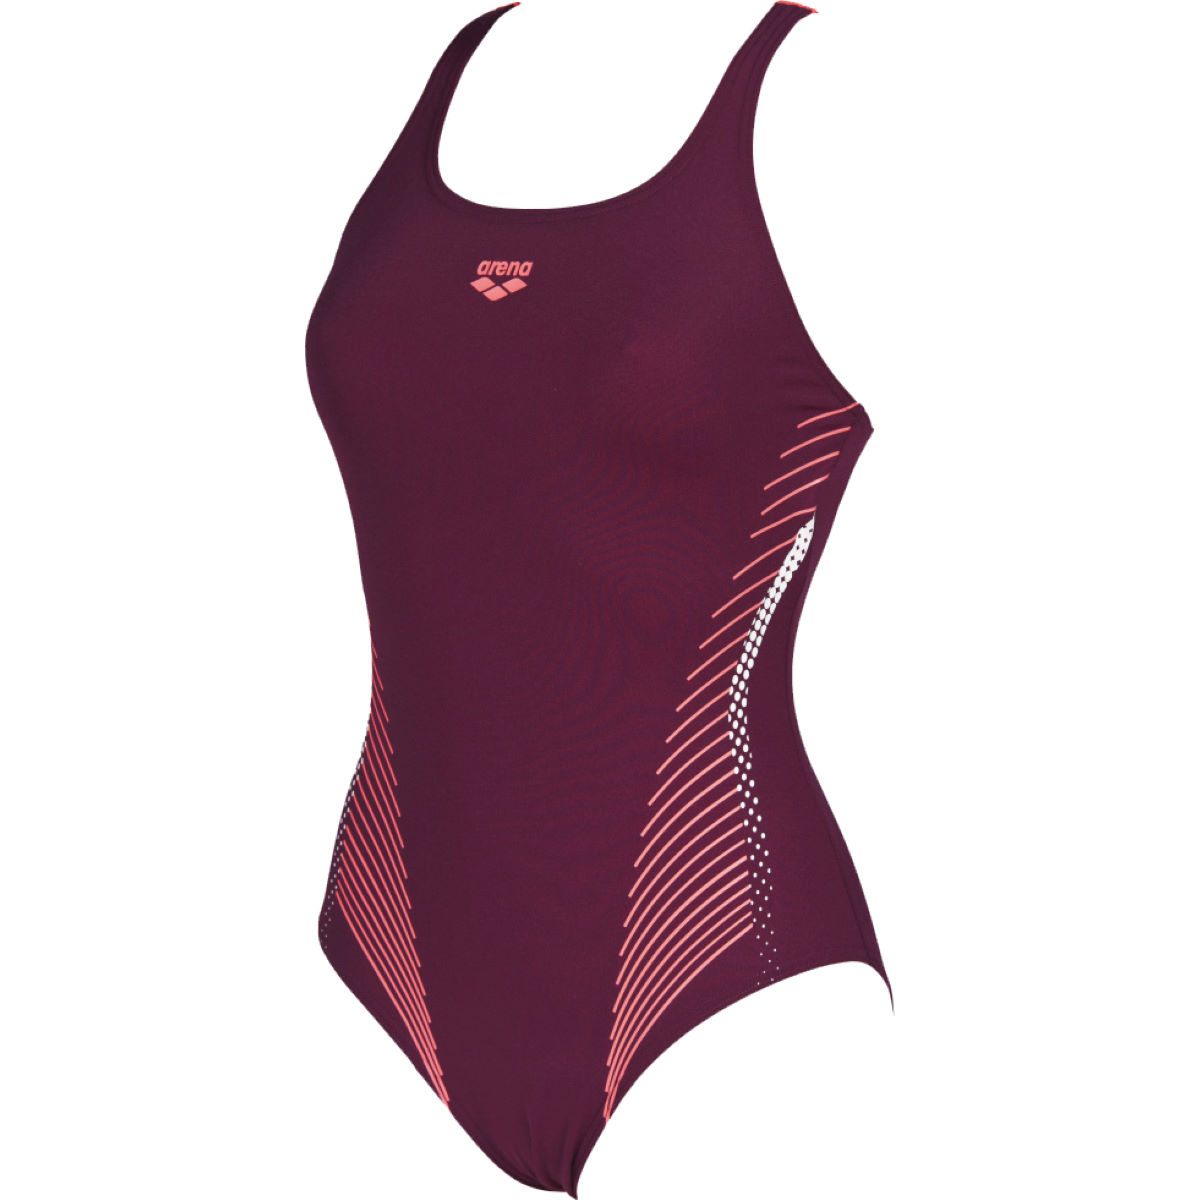 Arena Arena Womens Swimsuit - Fluids   One Piece Swimsuits